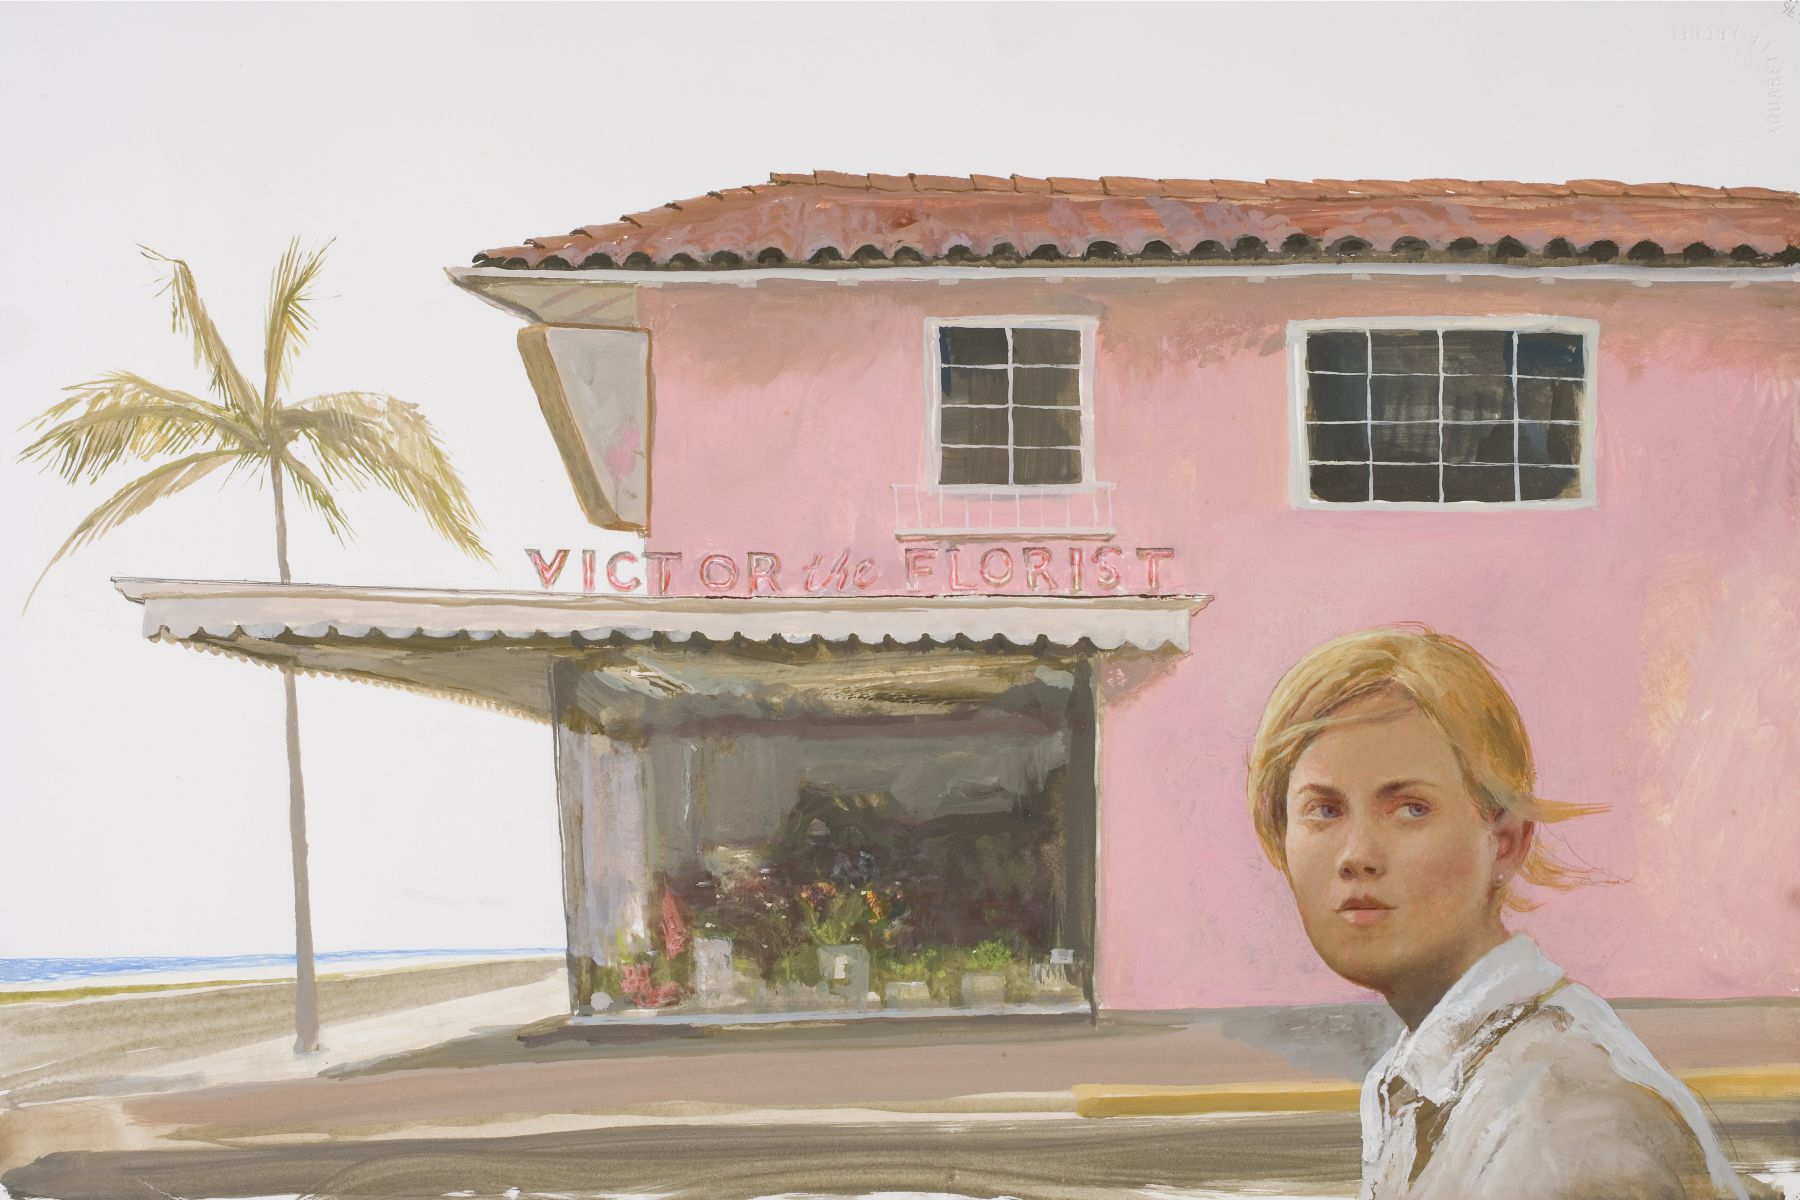 Bo Bartlett, Victor the Florist, 2007, gouache on paper, 14 1/2 x 21 inches